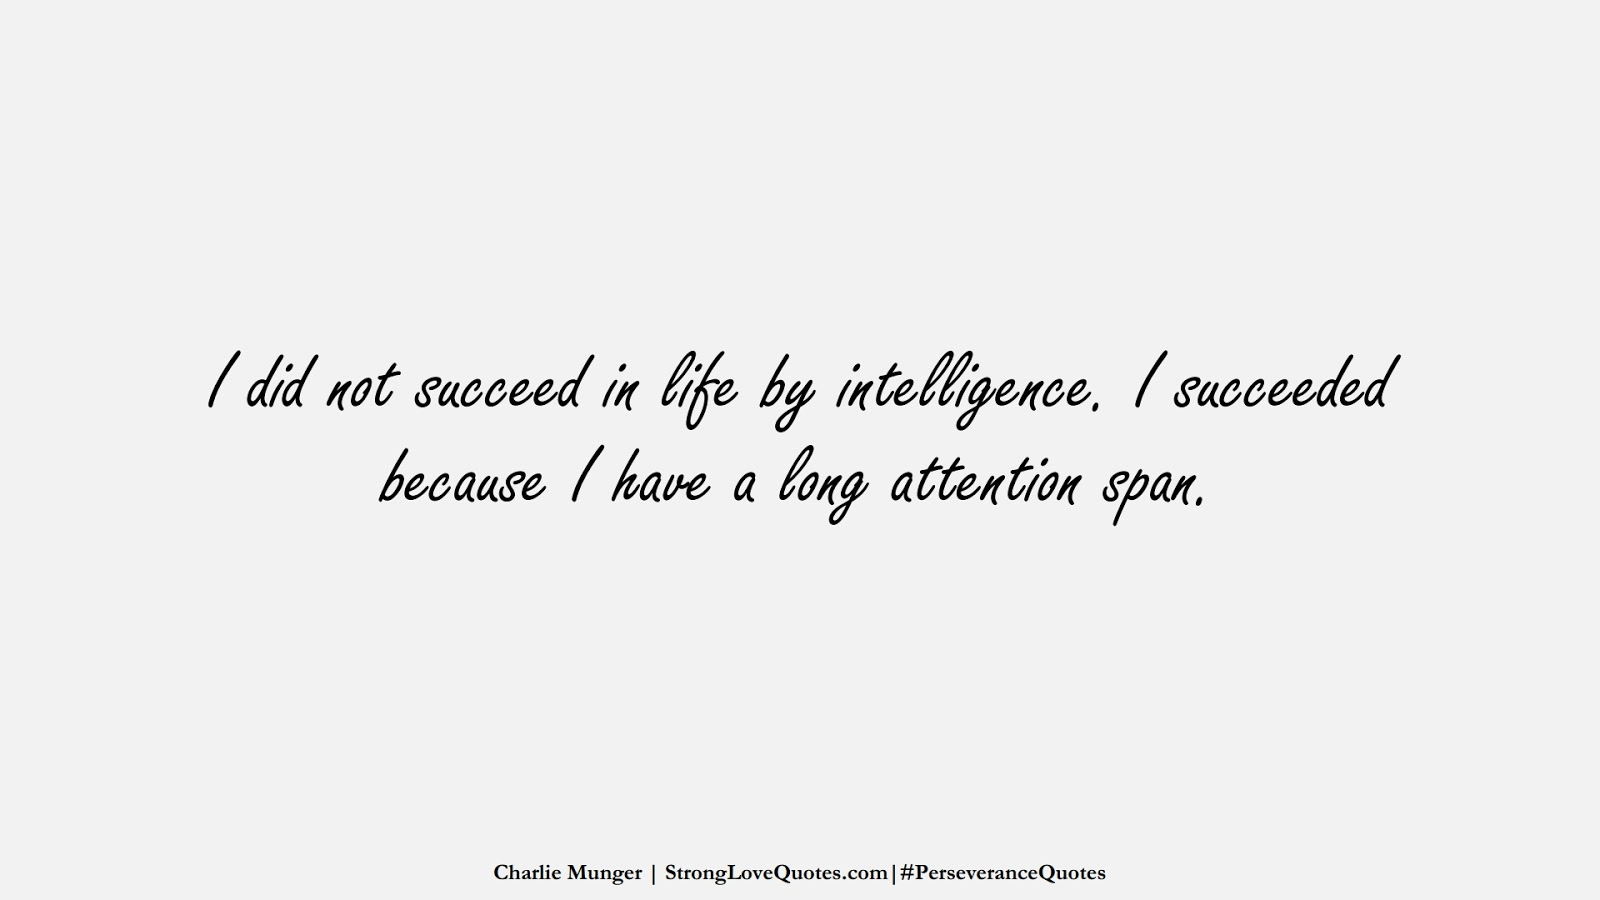 I did not succeed in life by intelligence. I succeeded because I have a long attention span. (Charlie Munger);  #PerseveranceQuotes